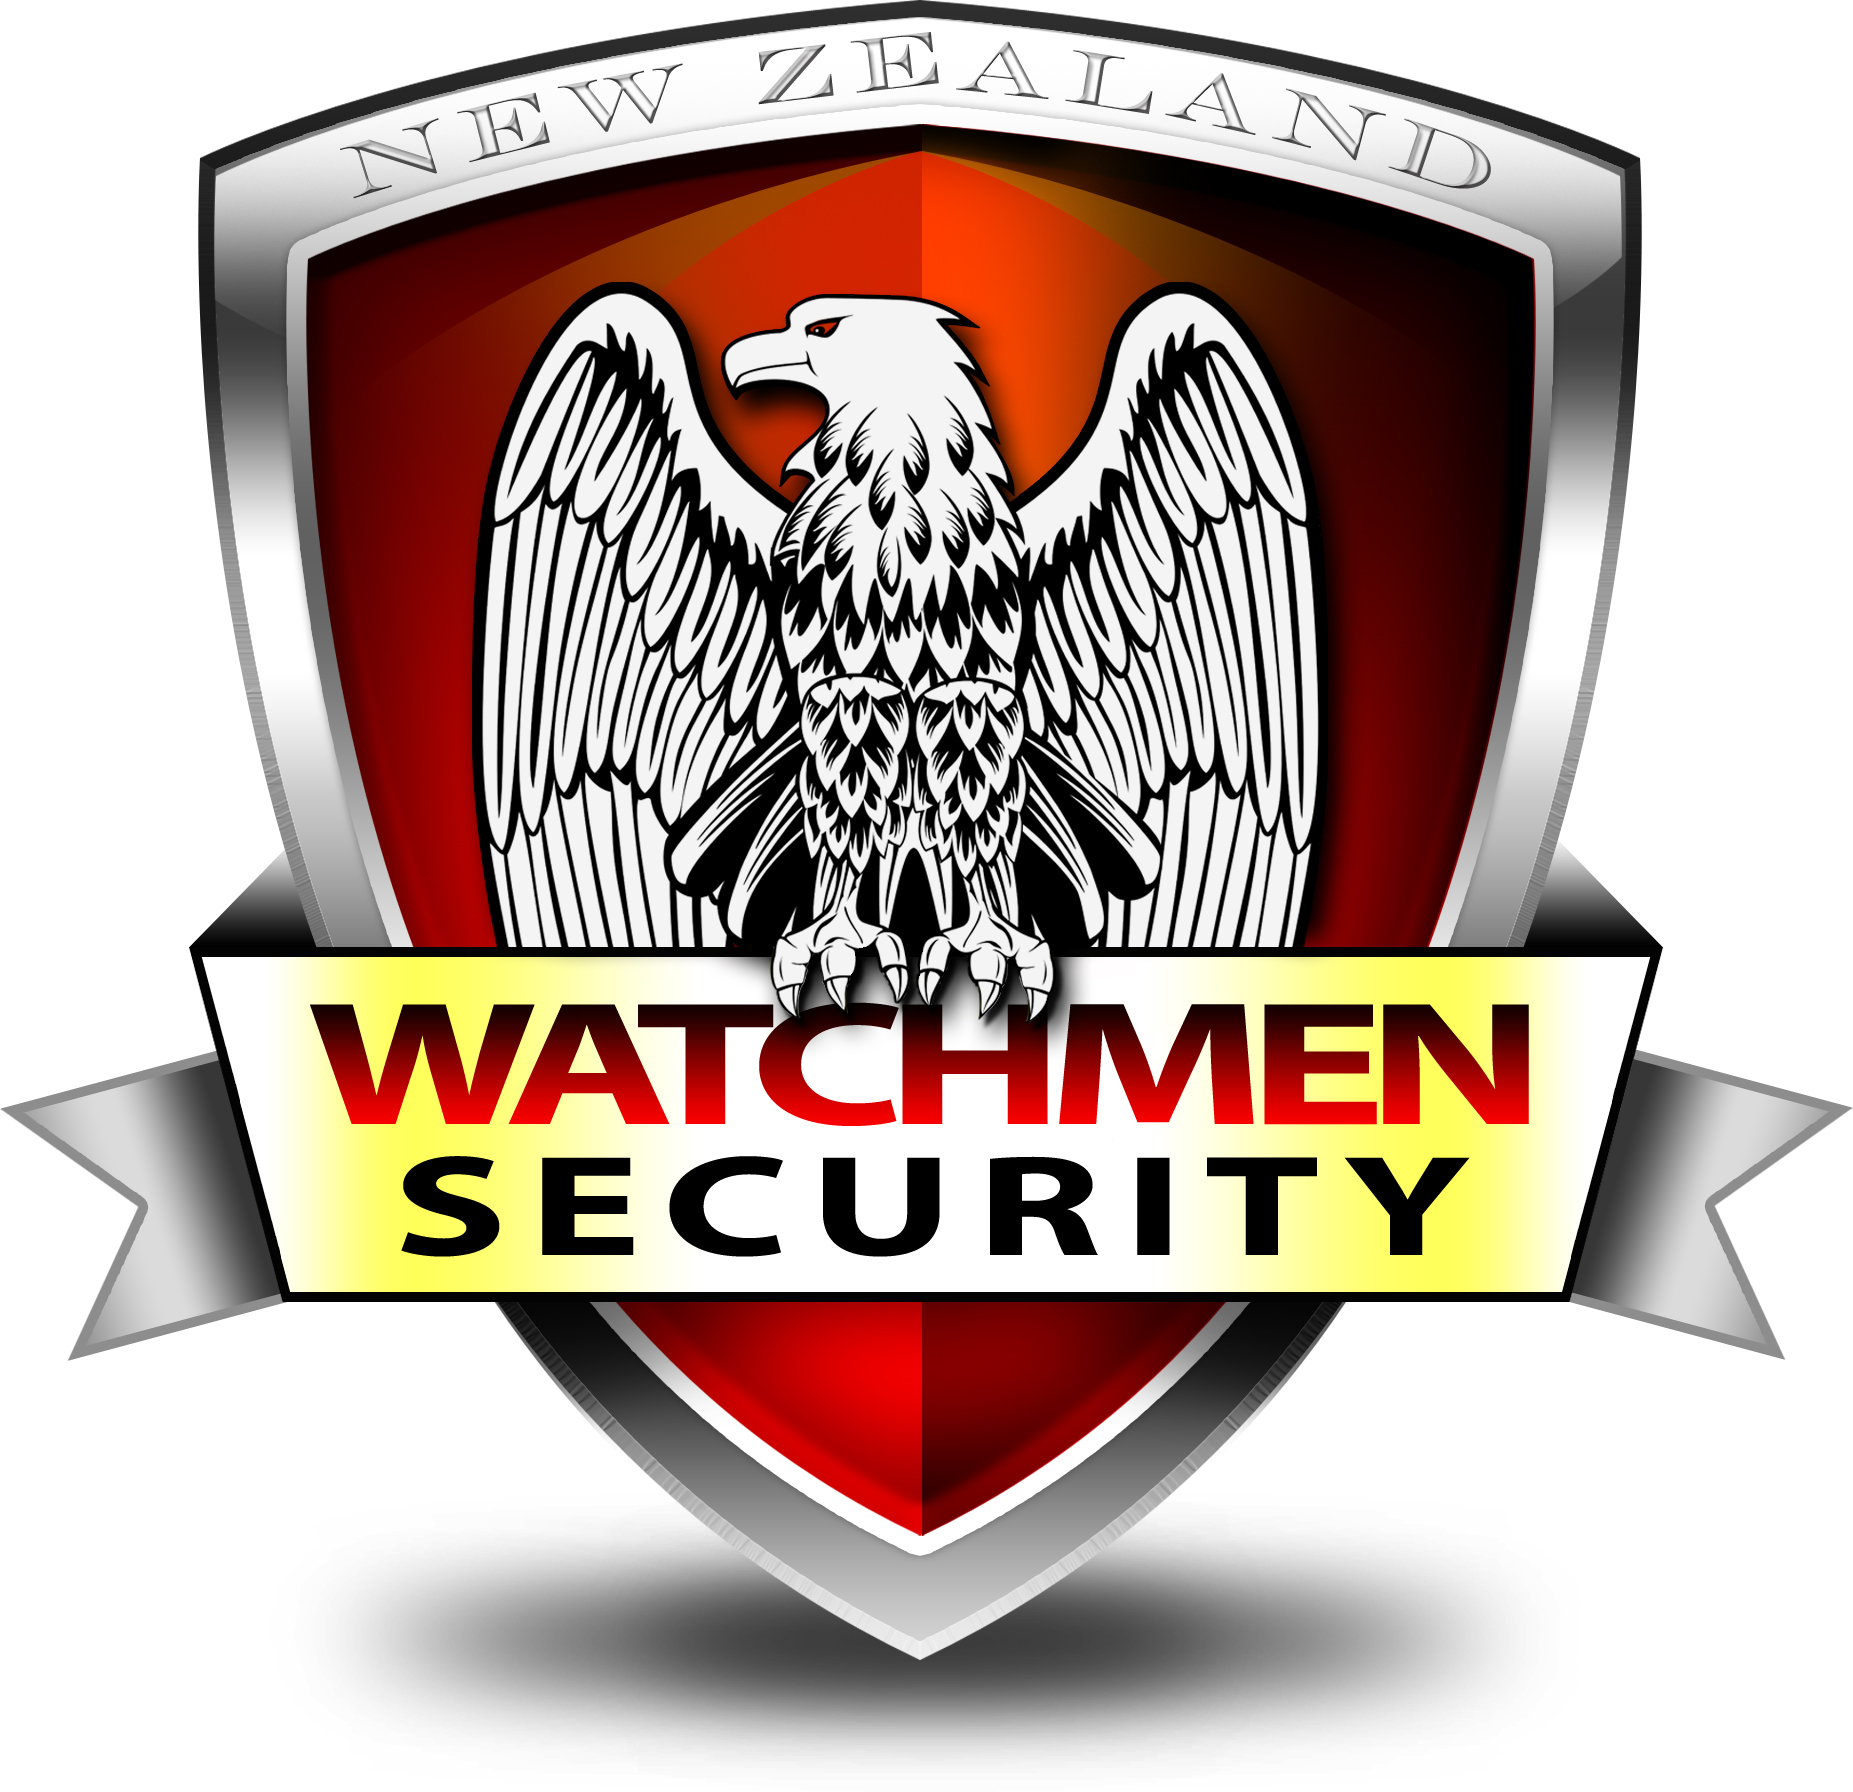 watchmen-security-logo